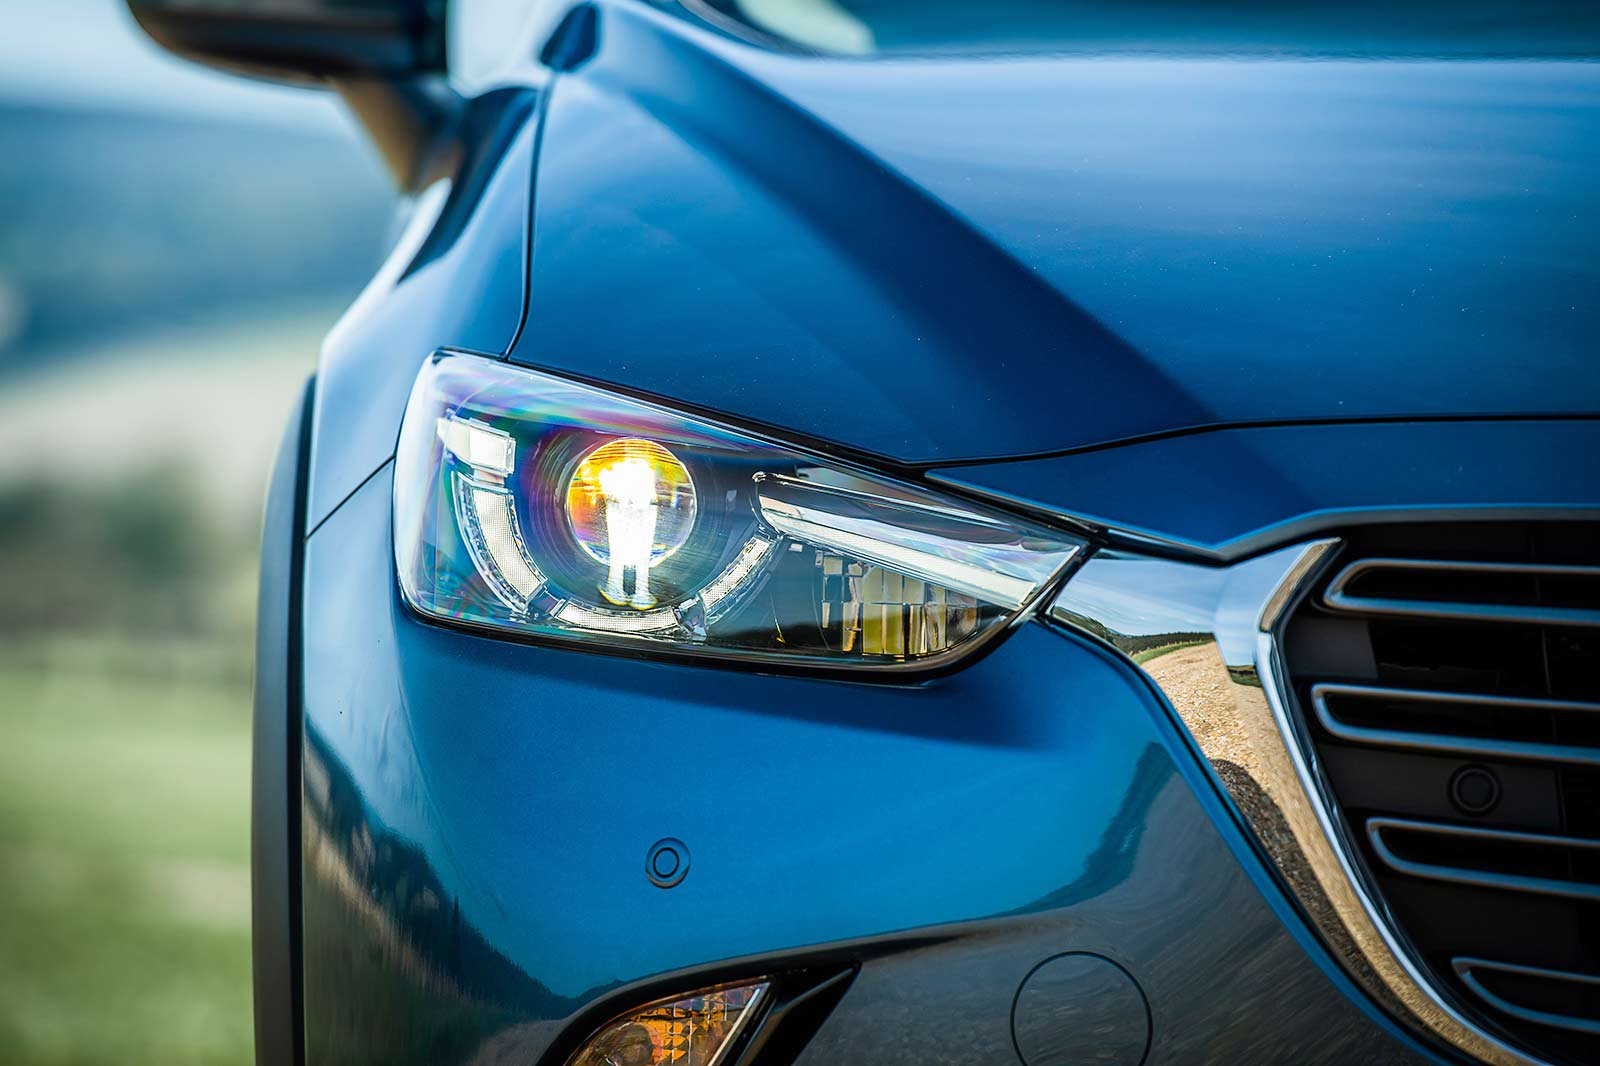 Mazda CX-3 headlight shot